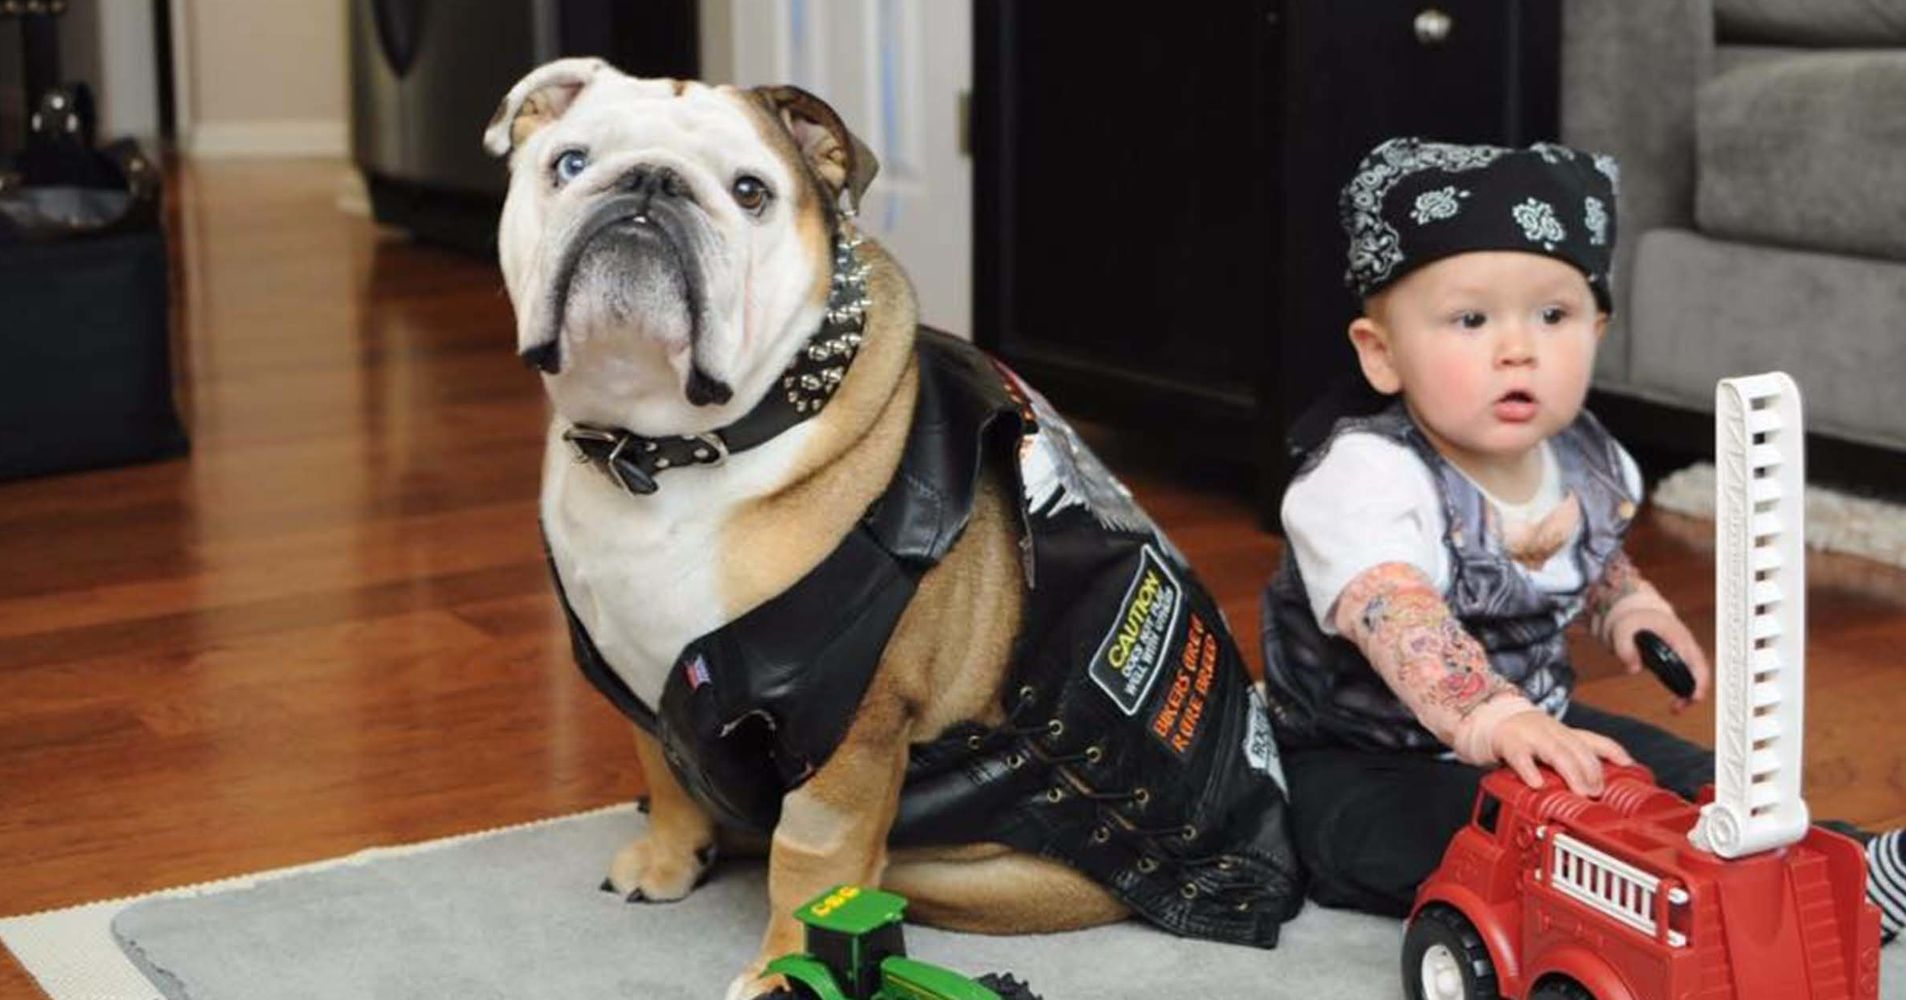 23 Dog And Kid Halloween Costumes That Will Make You Squeal